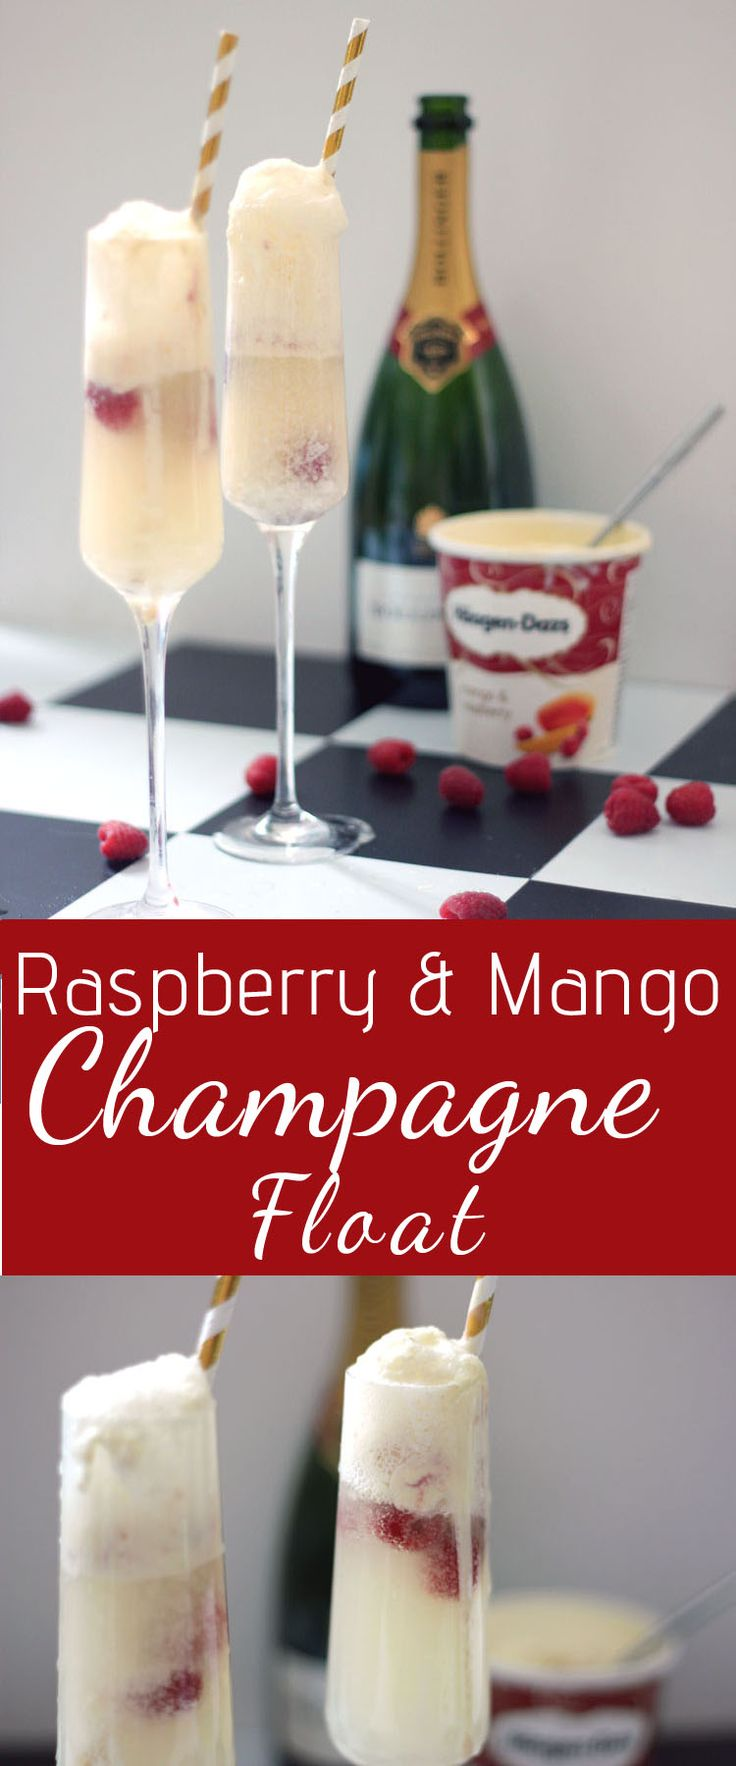 Raspberry and Mango Champagne Float Cocktail with Haagen Dazs Ice Cream and Fresh Raspberries